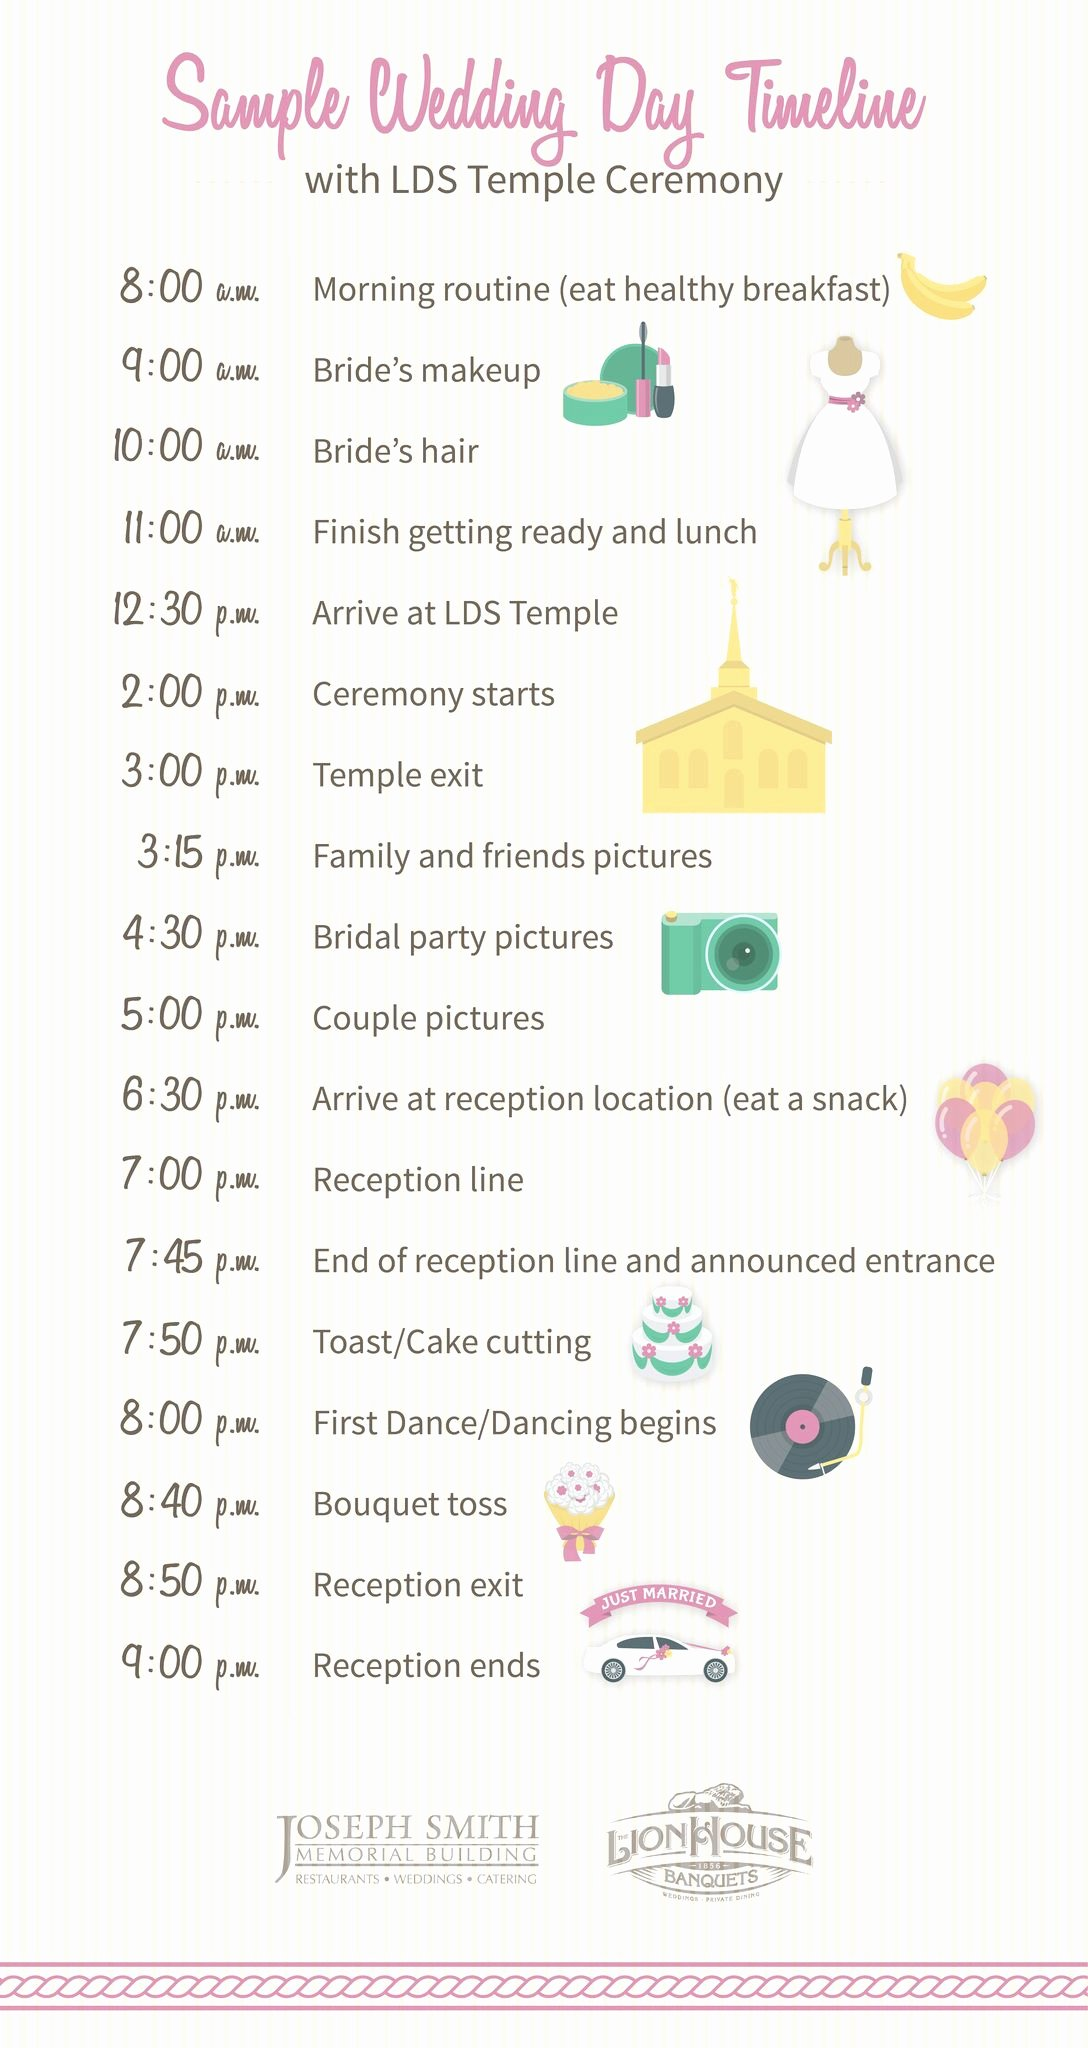 Day Of Wedding Timeline Template Inspirational How to Build Your Wedding Day Timeline